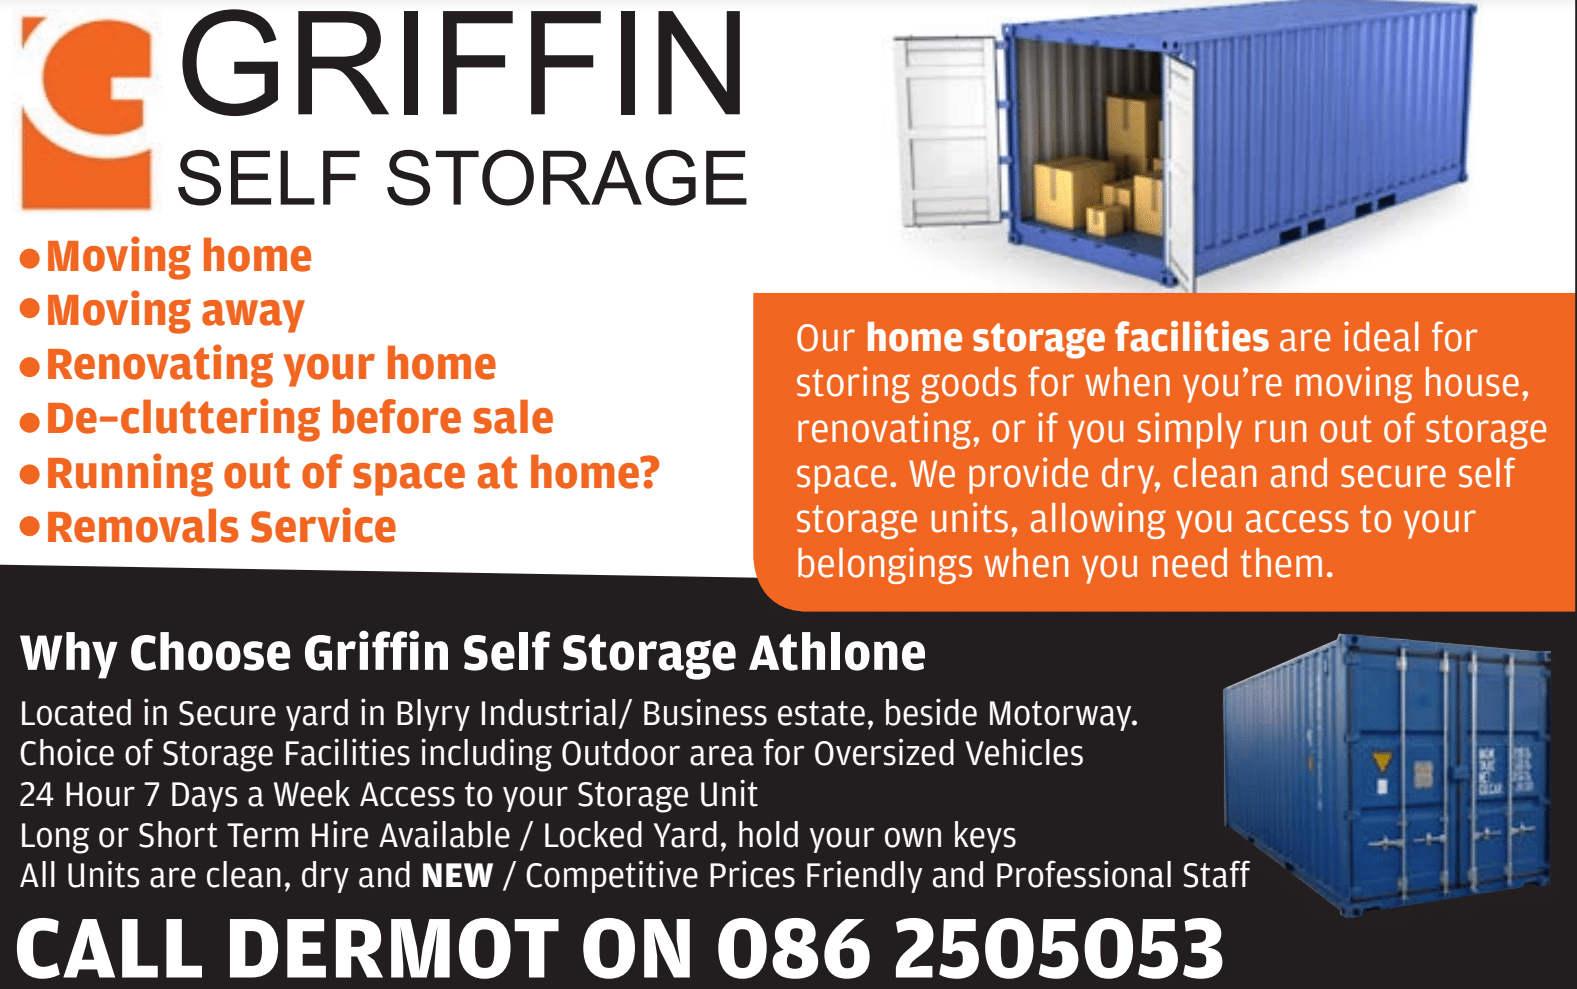 Blue Box Self Storage Athlone